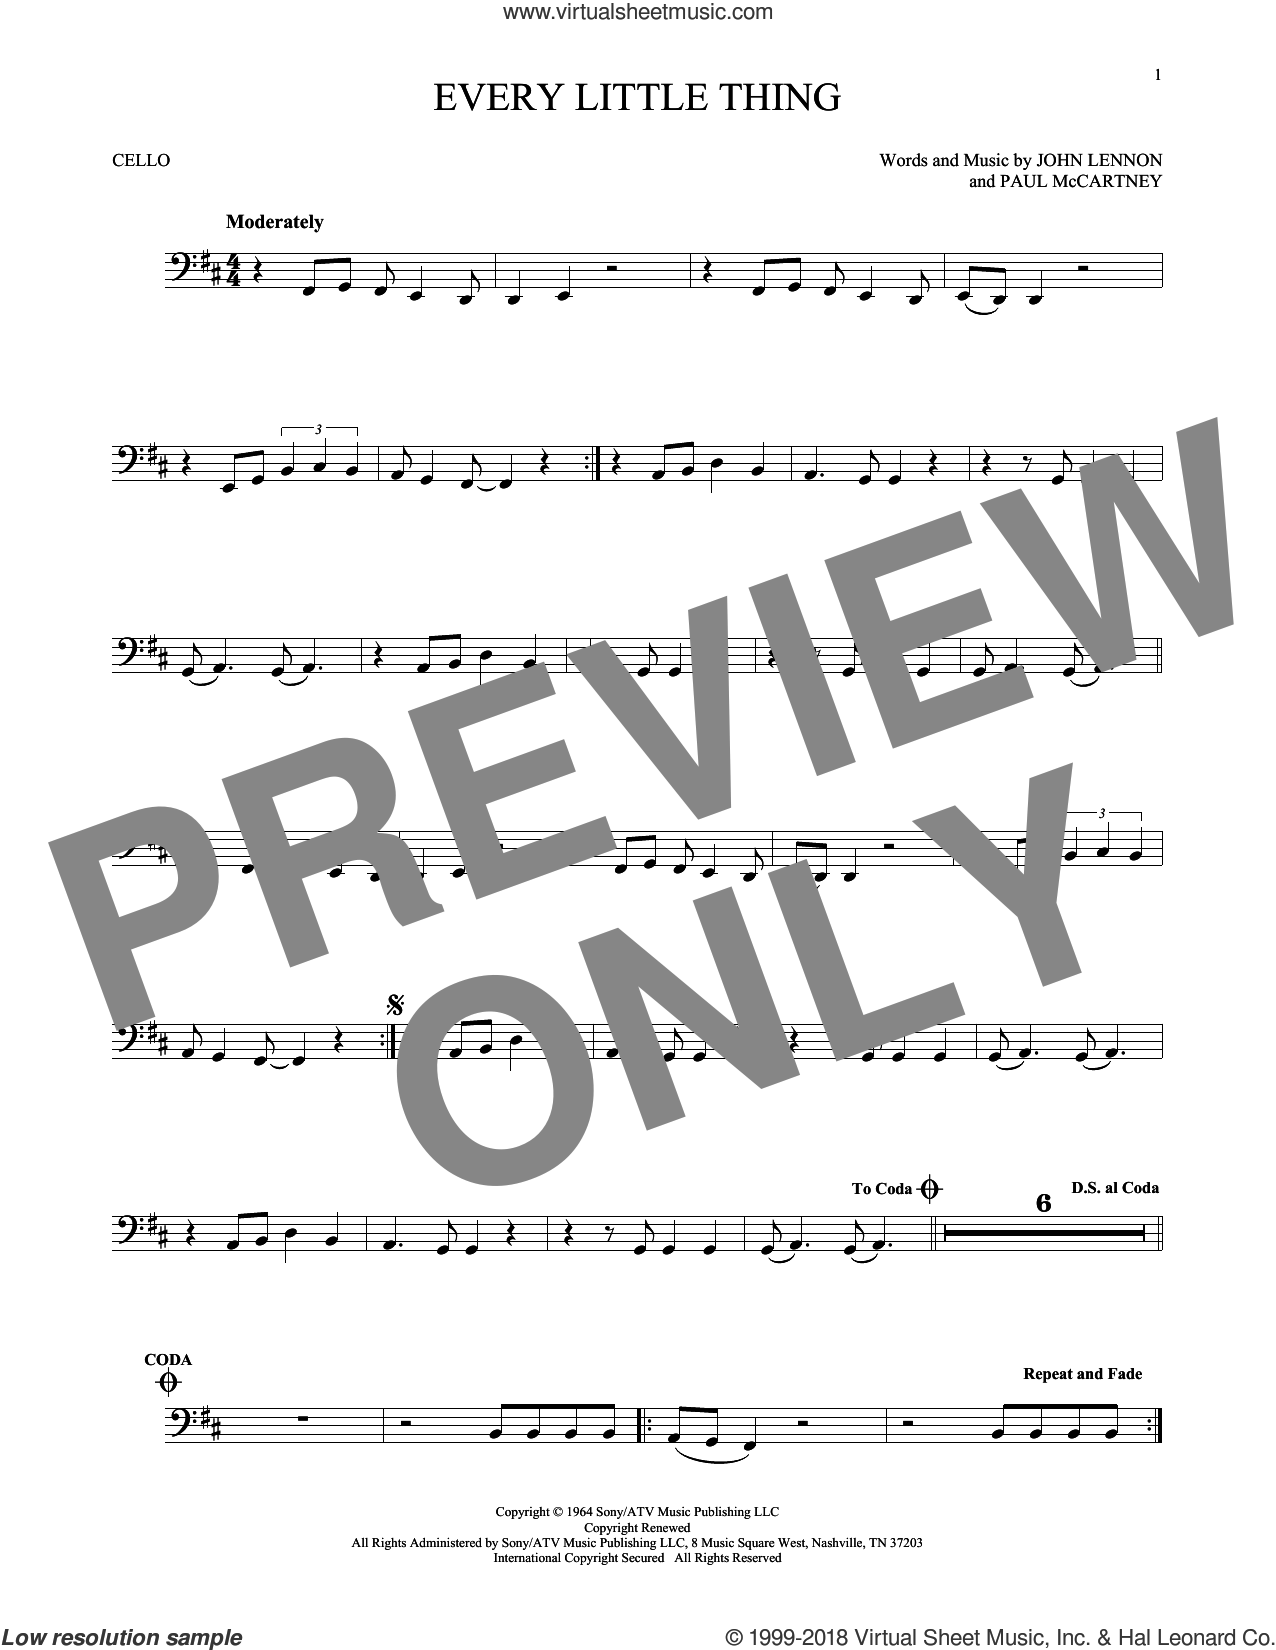 Every Little Thing sheet music for cello solo by The Beatles and Paul McCartney, intermediate skill level